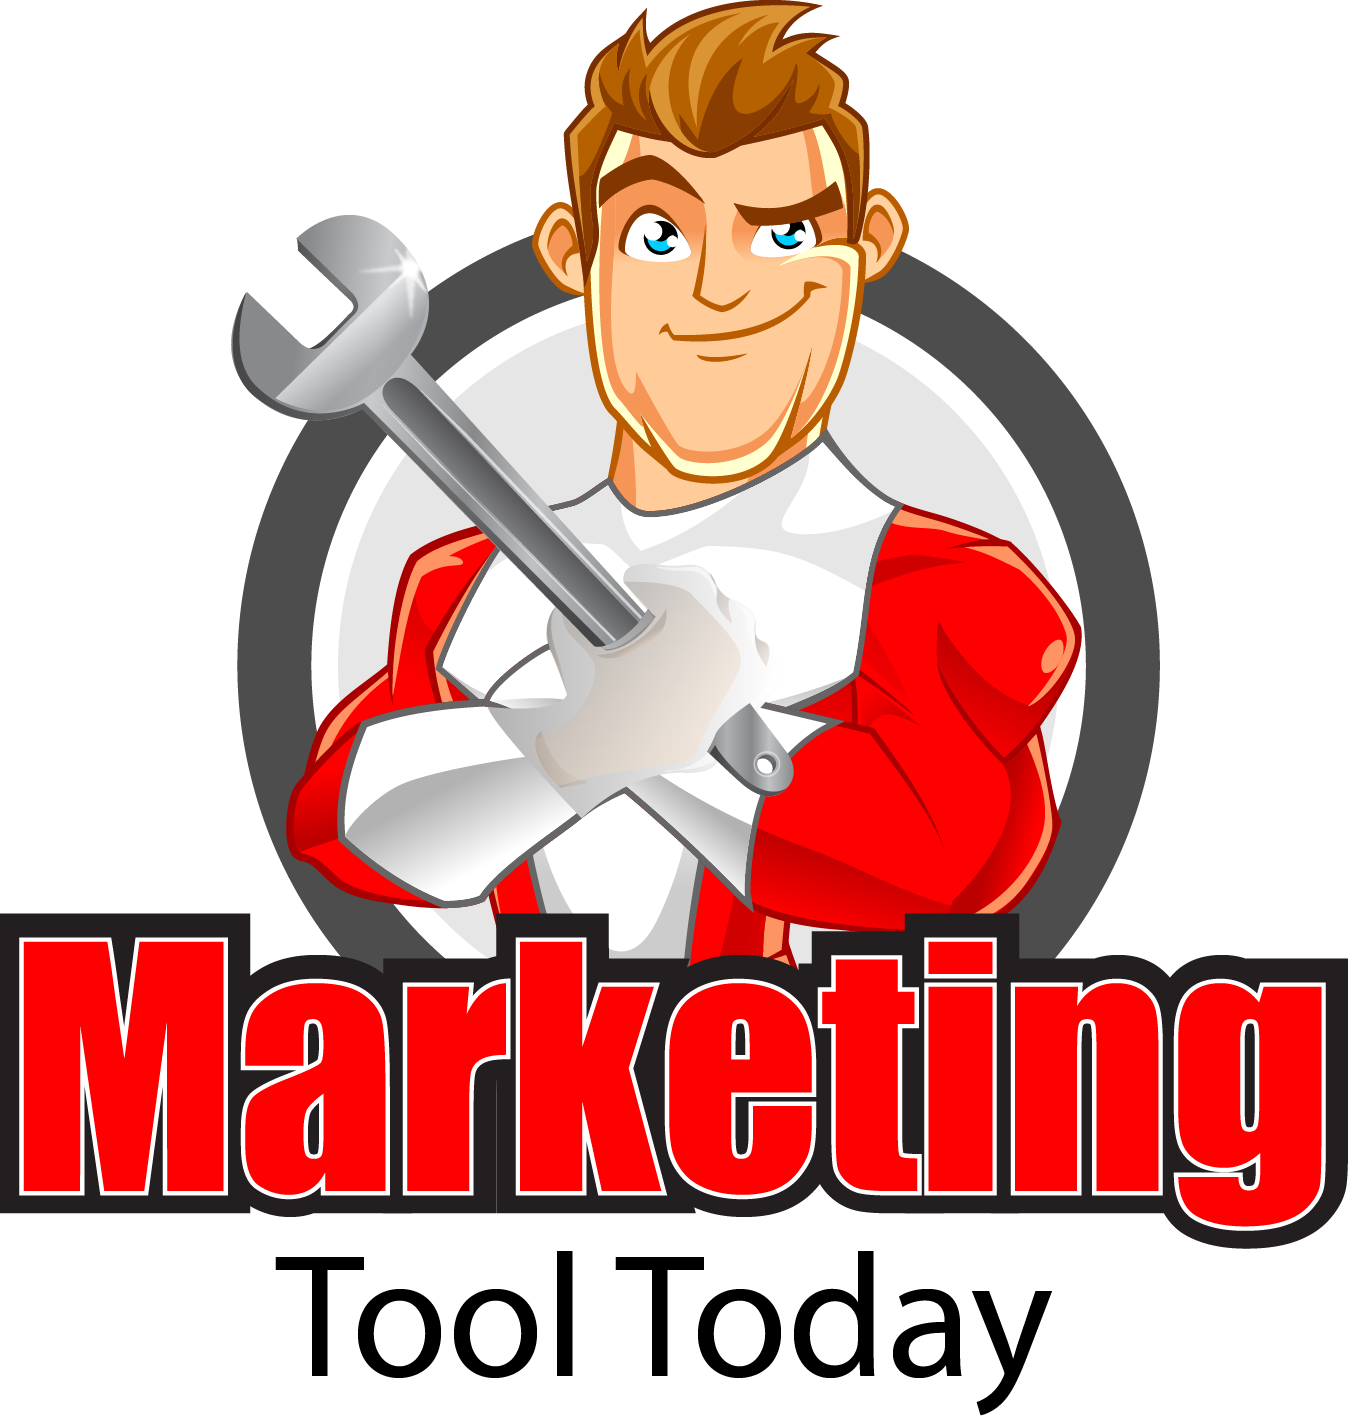 Marketing clipart internet marketing. Free tools tool today